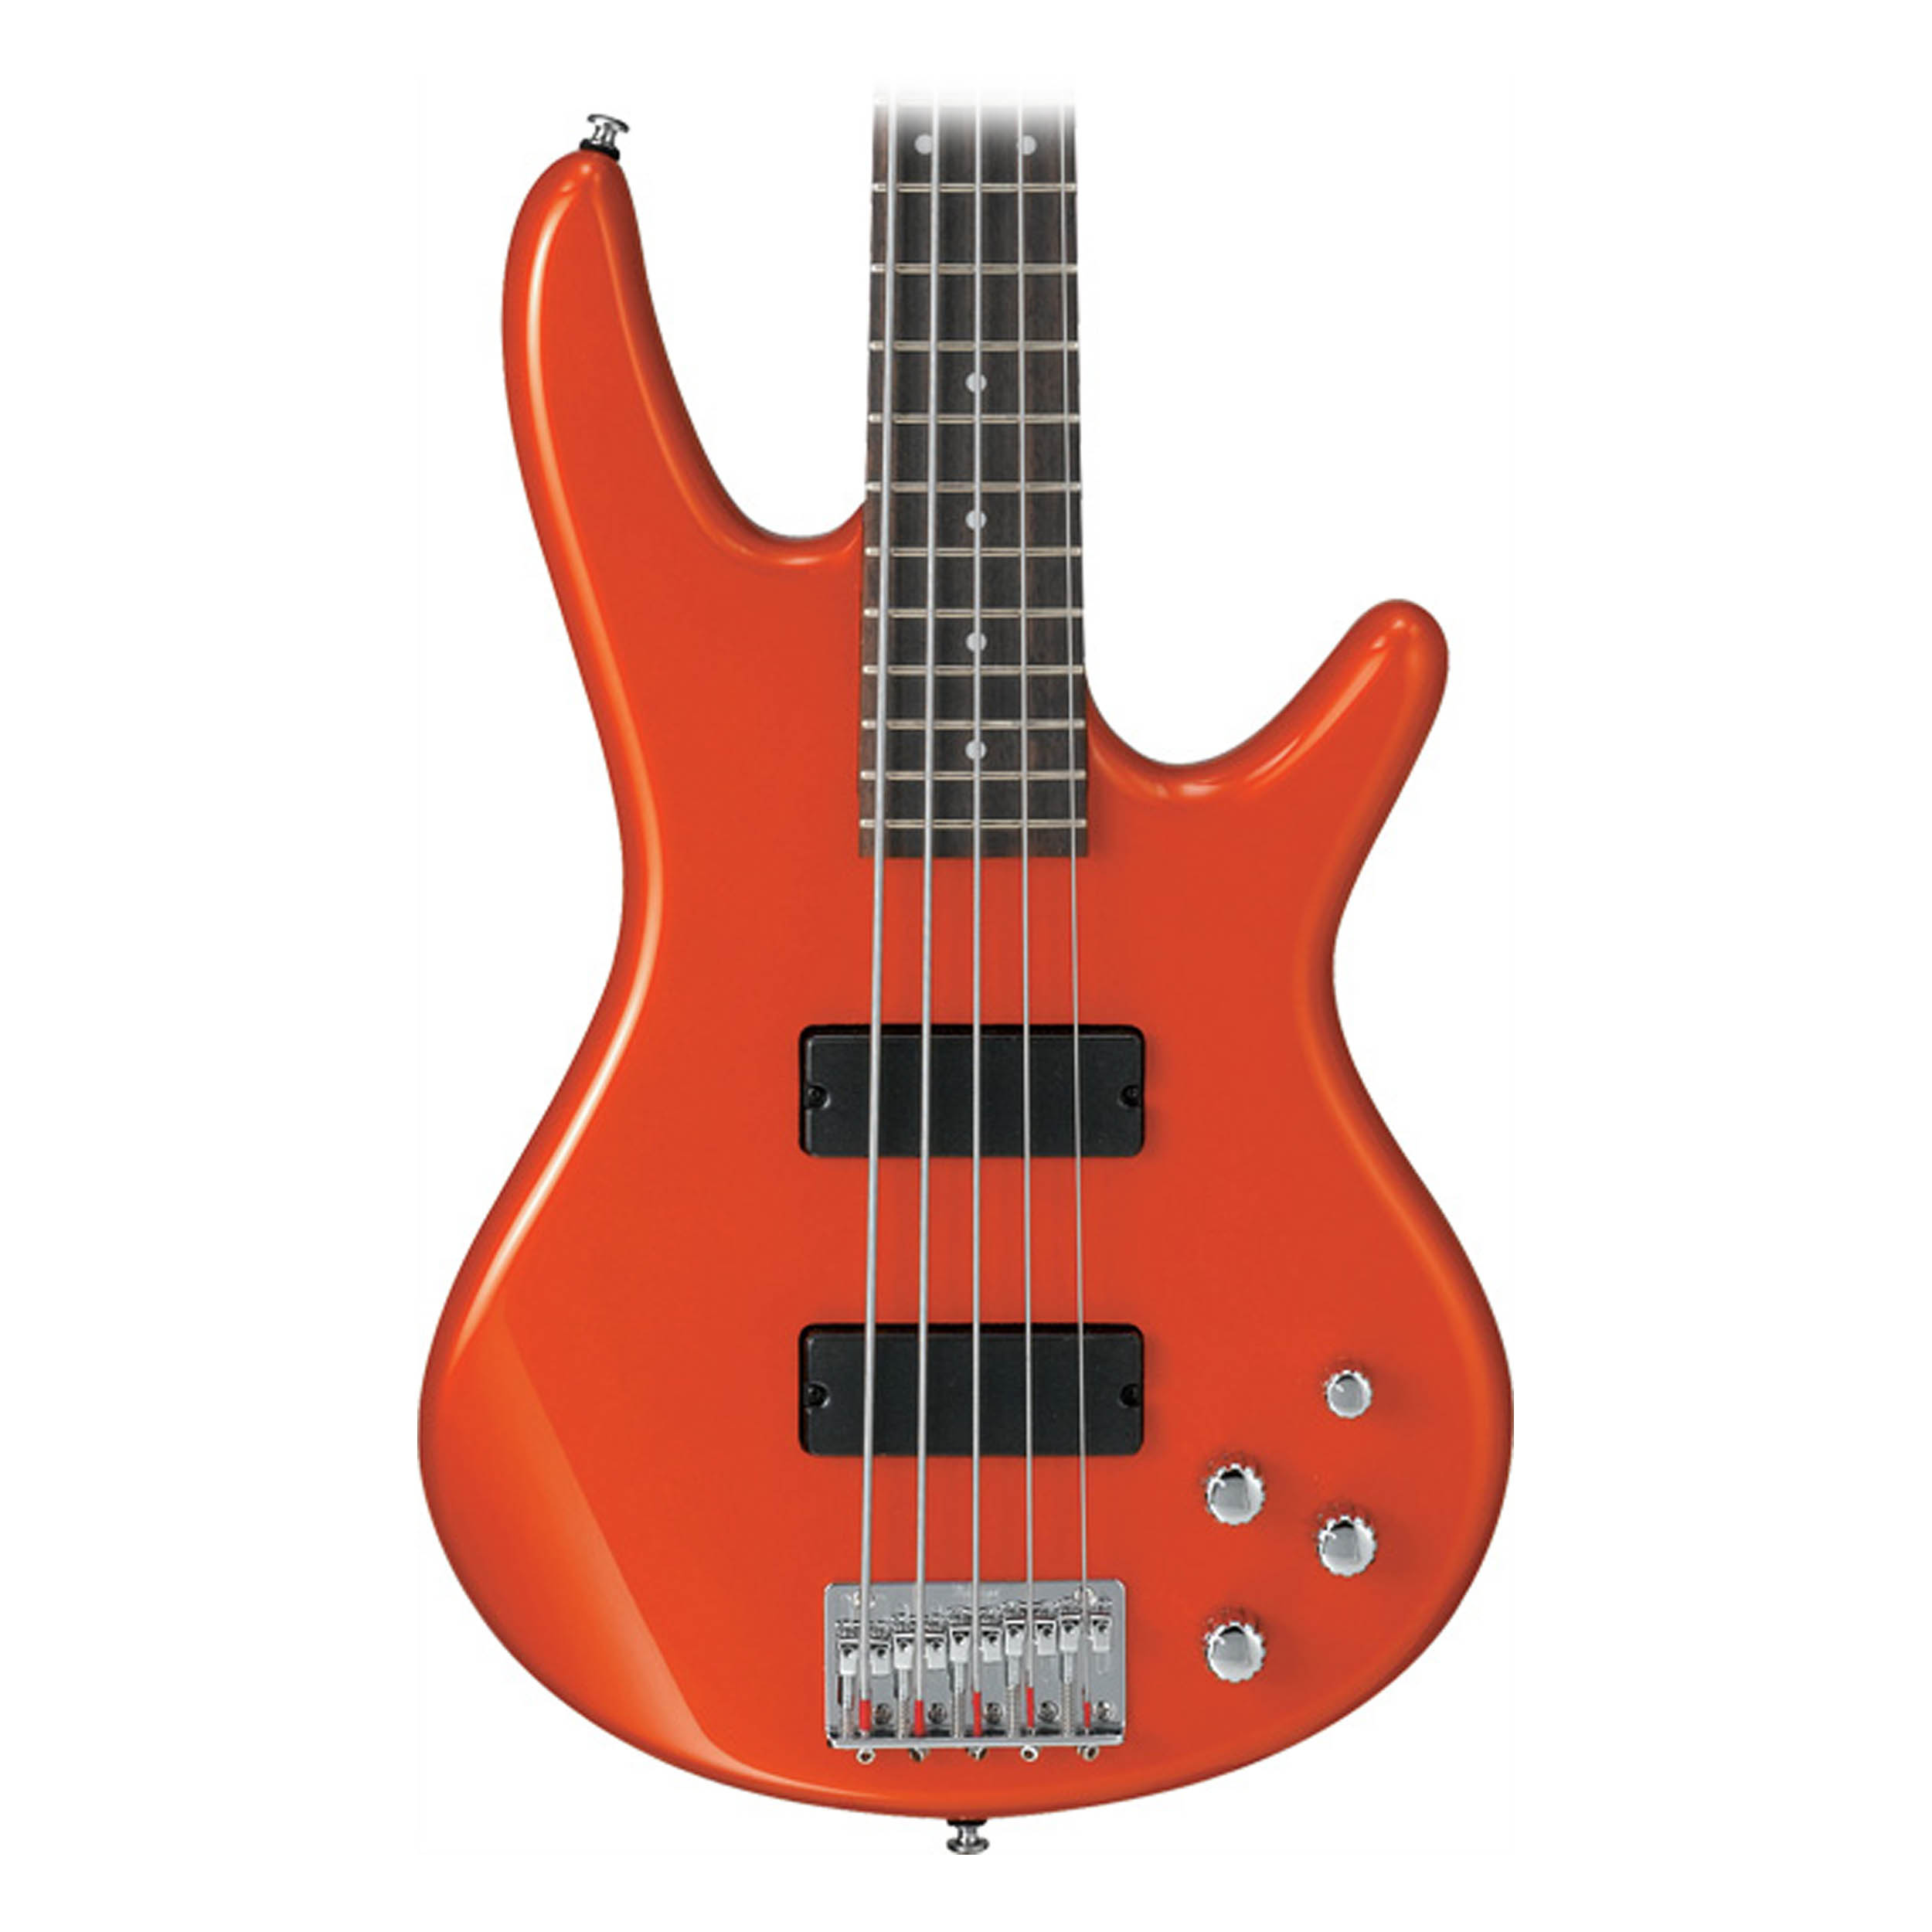 Cute Bass Pickup Configurations Tall Dimarzio Pickup Wiring Regular Electric Guitar Wire Dimarzio Wiring Colors Youthful Guitar Tone Wiring WhiteIbanez Humbuckers Ibanez | AltoMusic